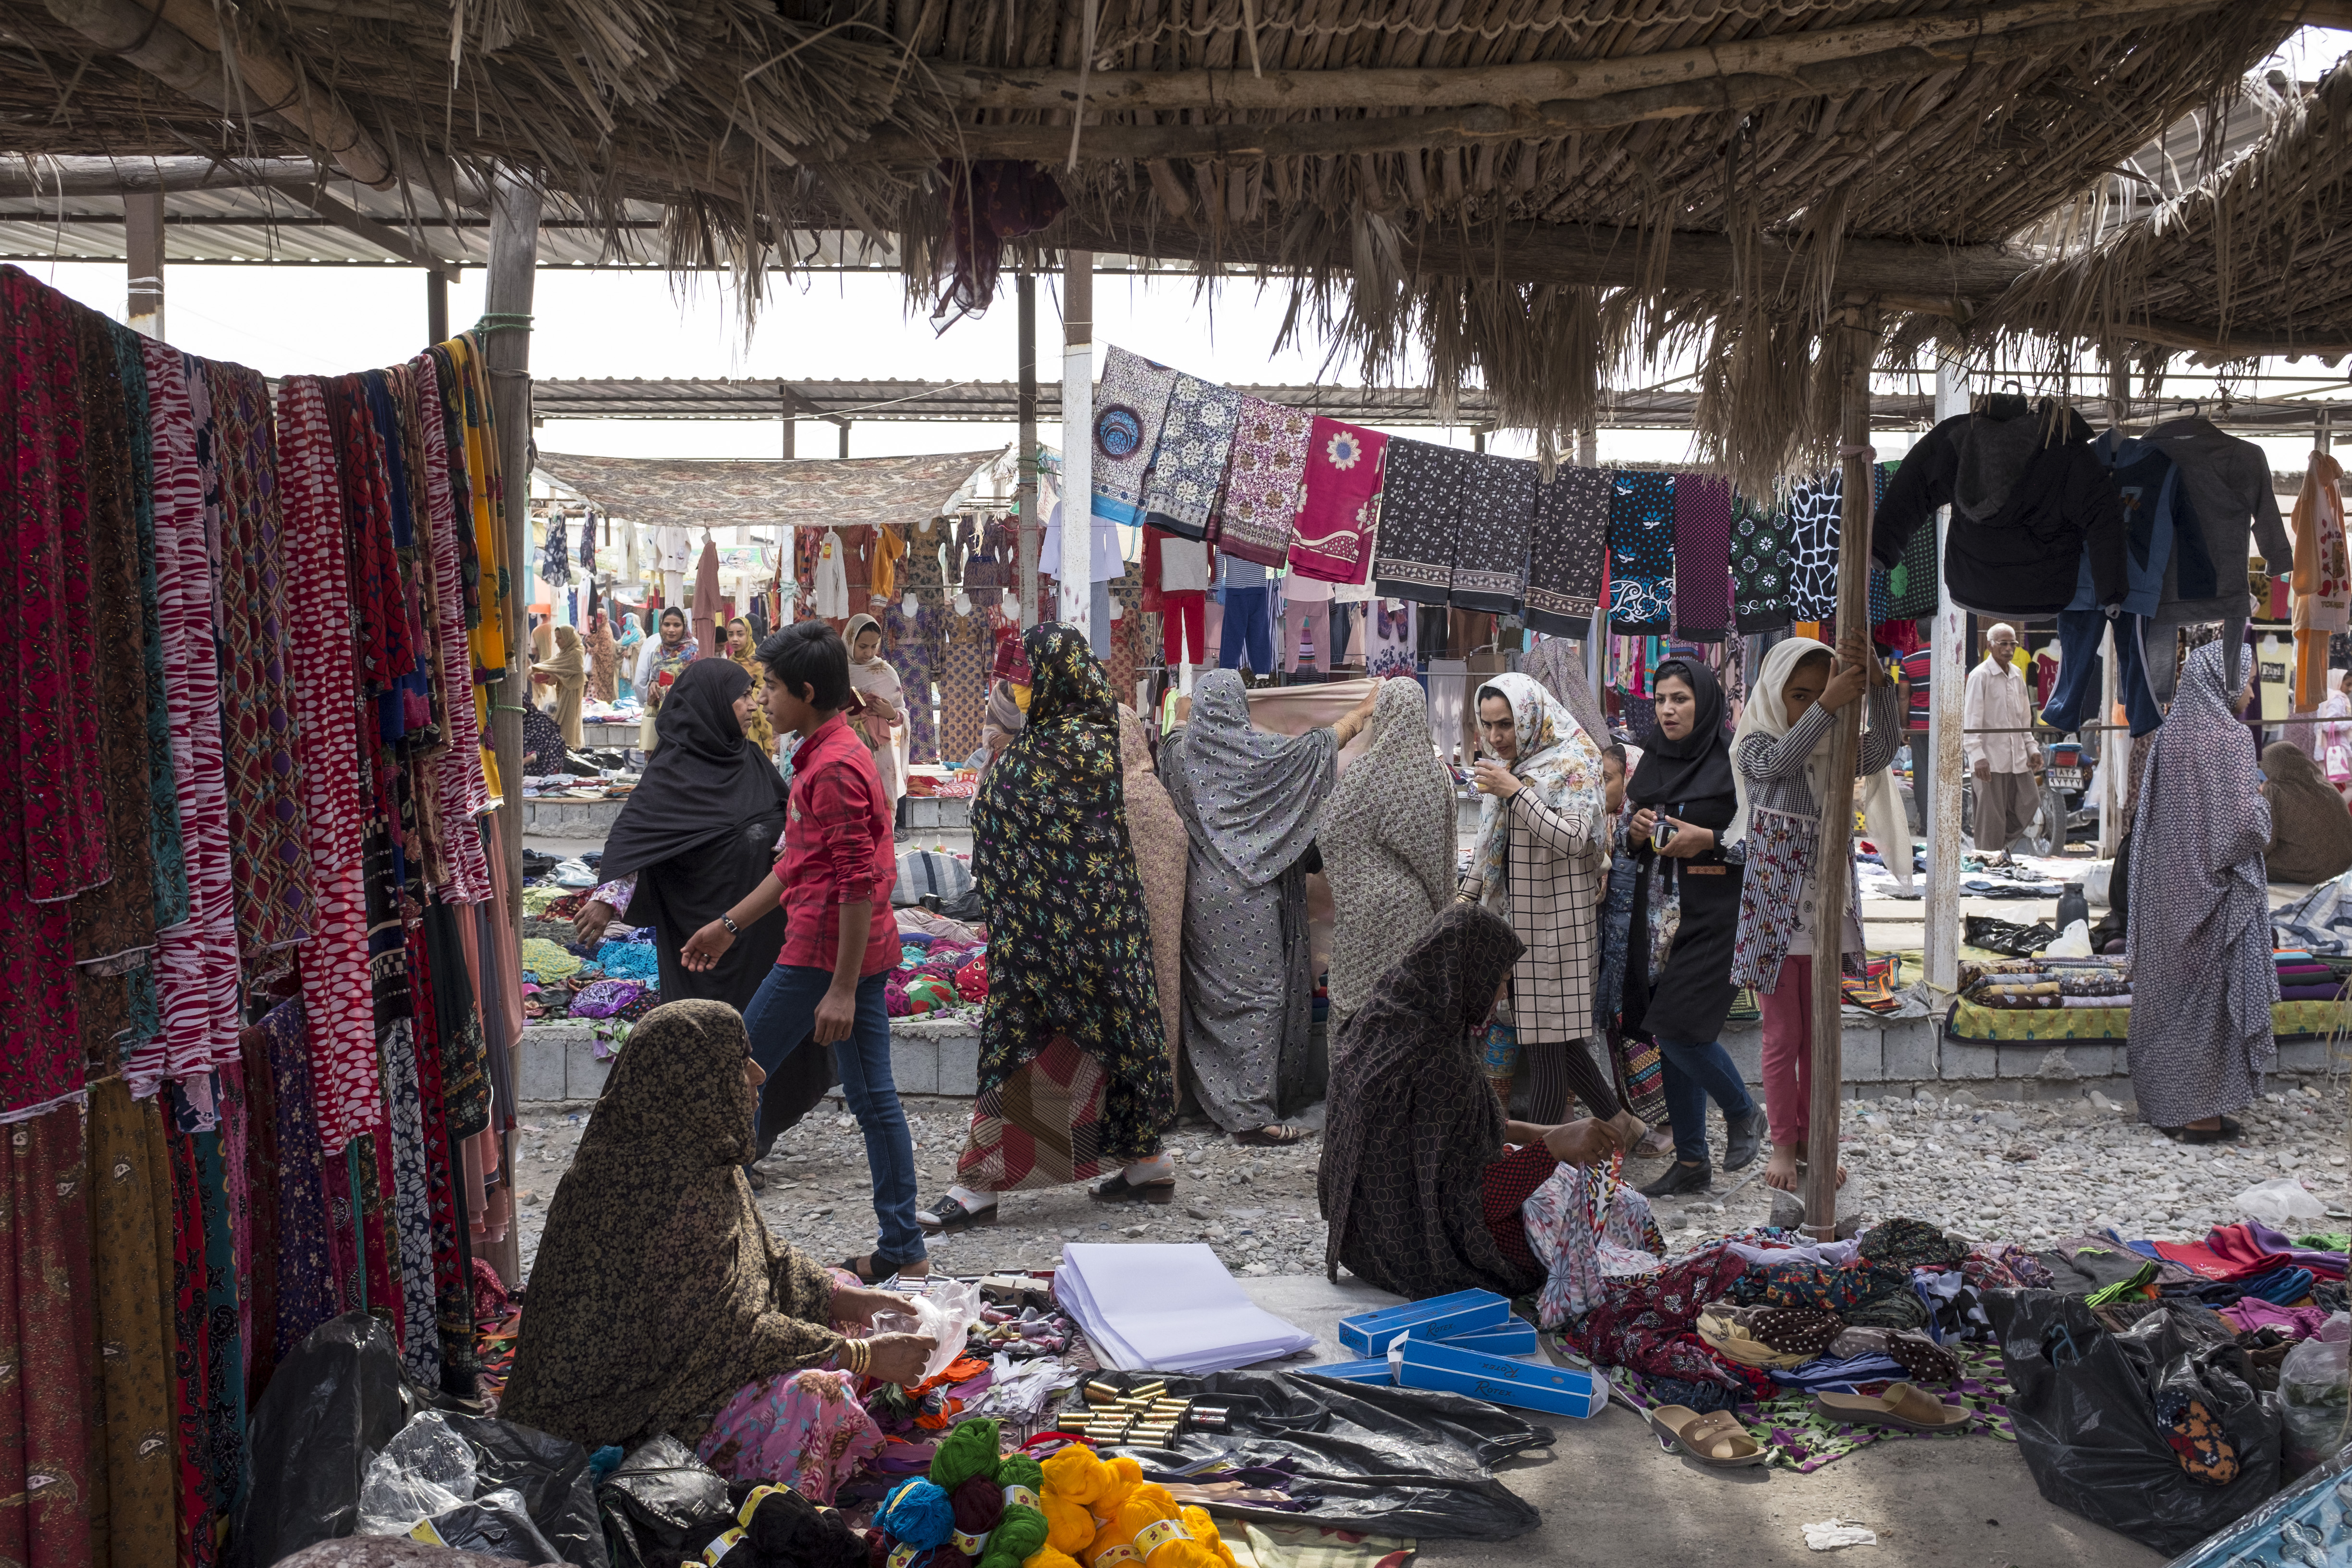 The Panjshambe bazaar is also where women can buy and sell masks. The majority there are masked as they conduct their business without male escorts (MEE)